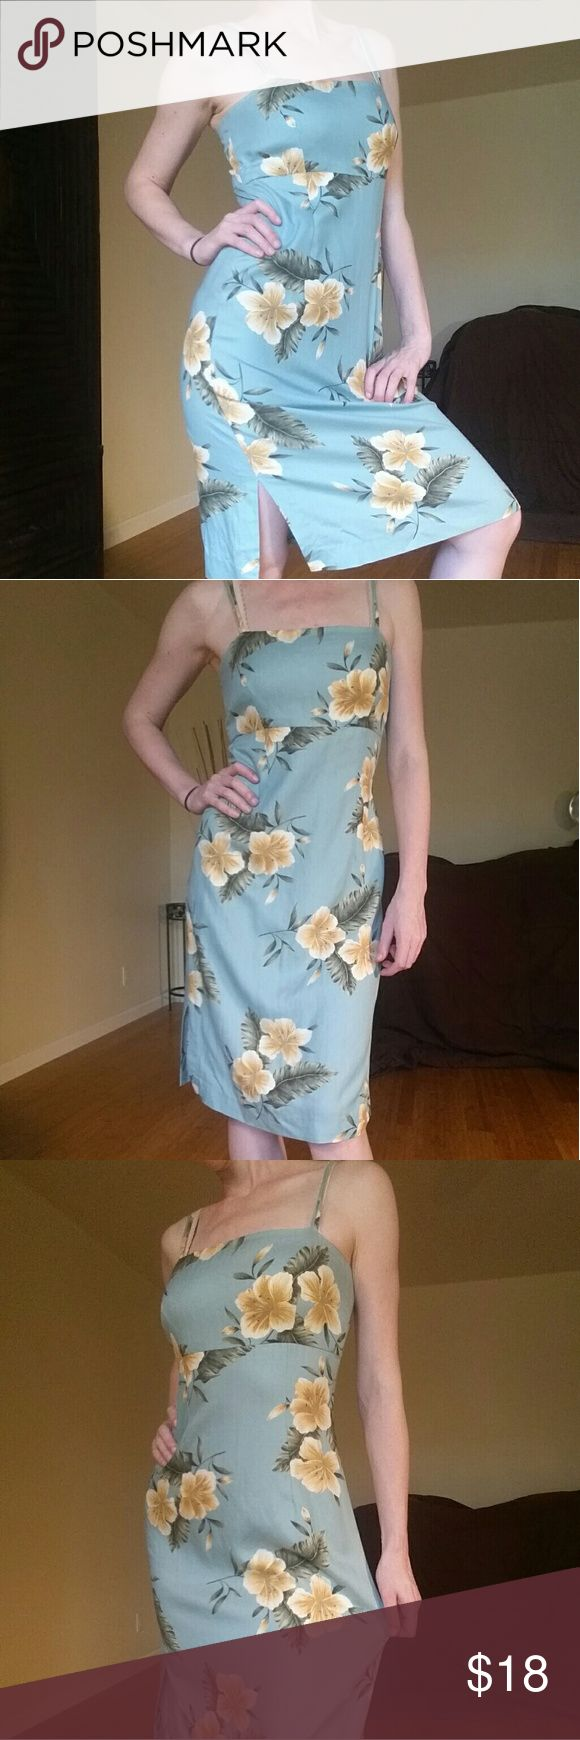 Hawaiian Print Dress Beautiful blue and yellow color palette reminiscent of Hawaiian beaches. Great fitted cut (hard to find with Hawaiian print pieces usually). Very comfortable. No signs of wear. Dresses Midi